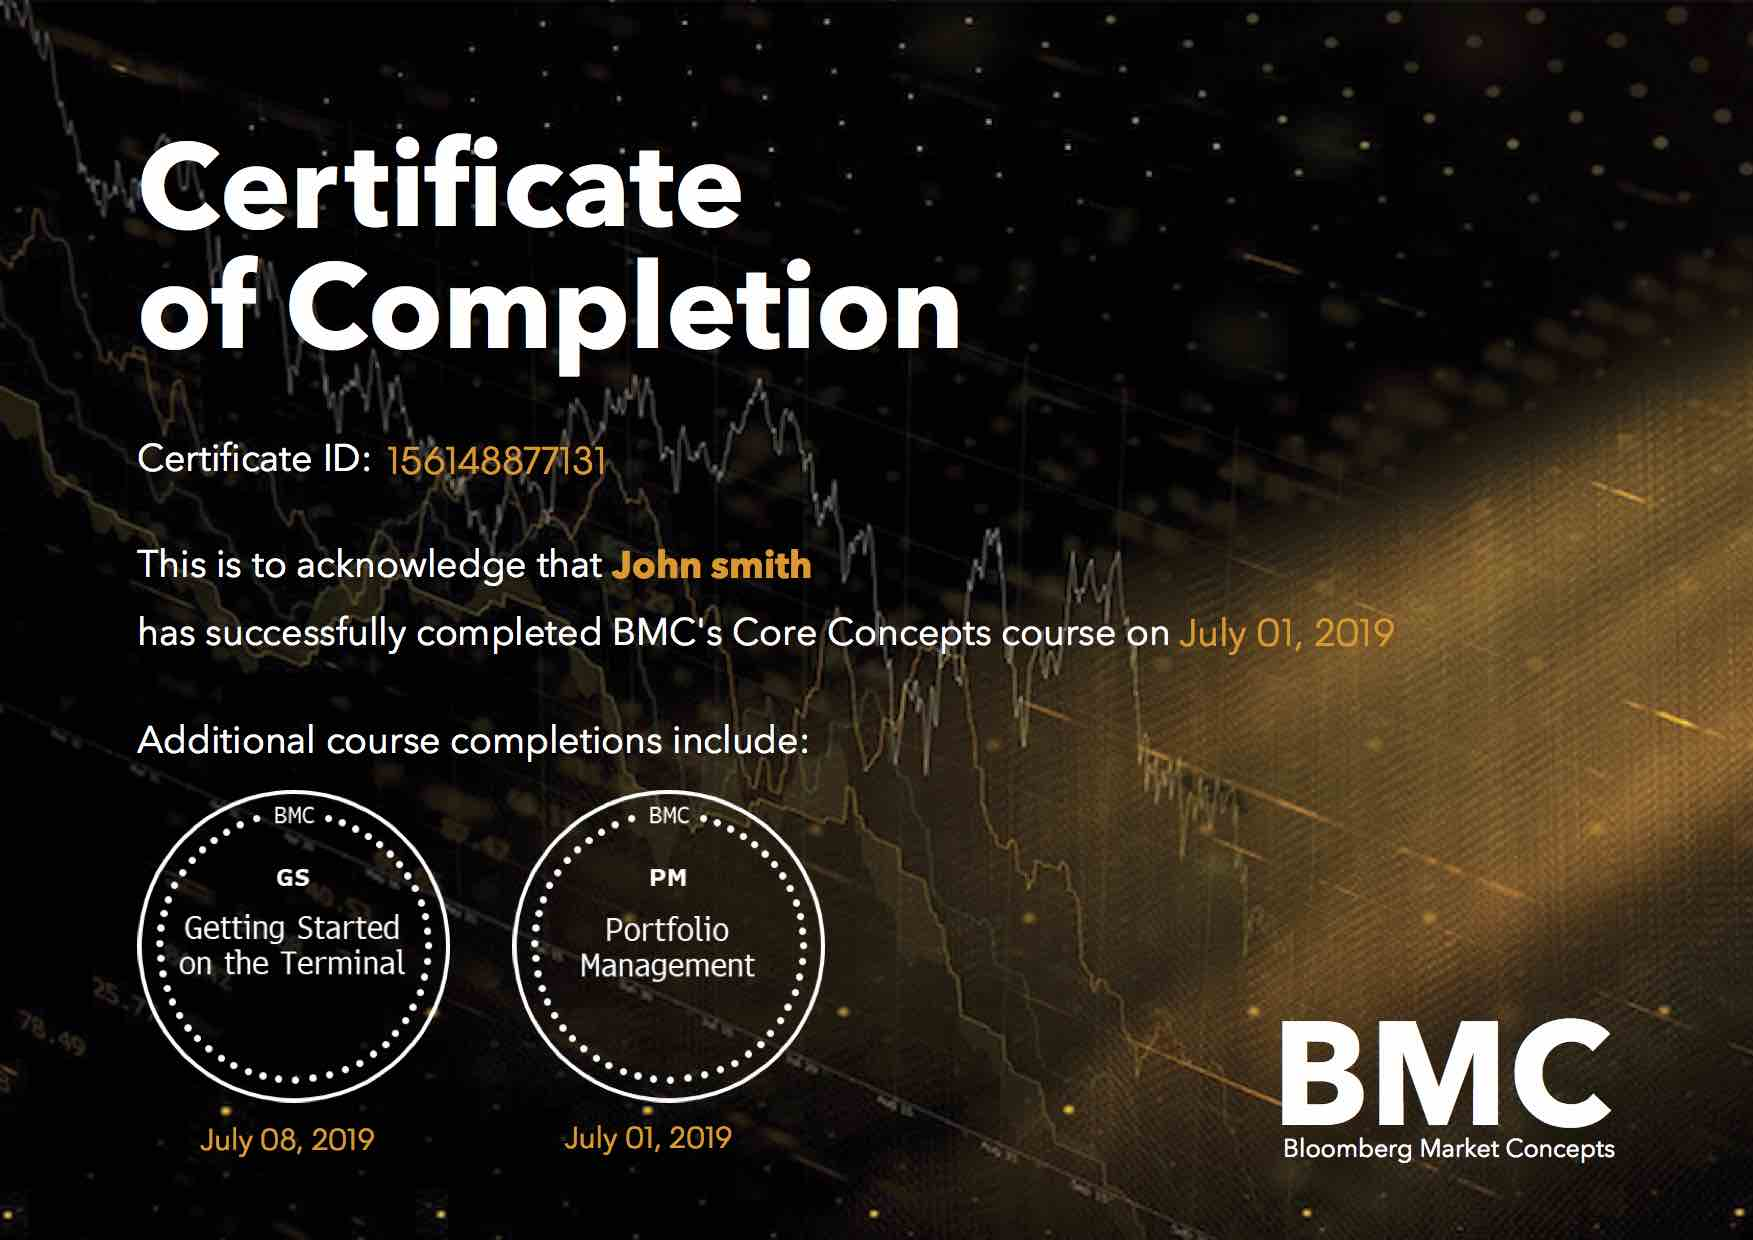 Certification of Completion from BMC image